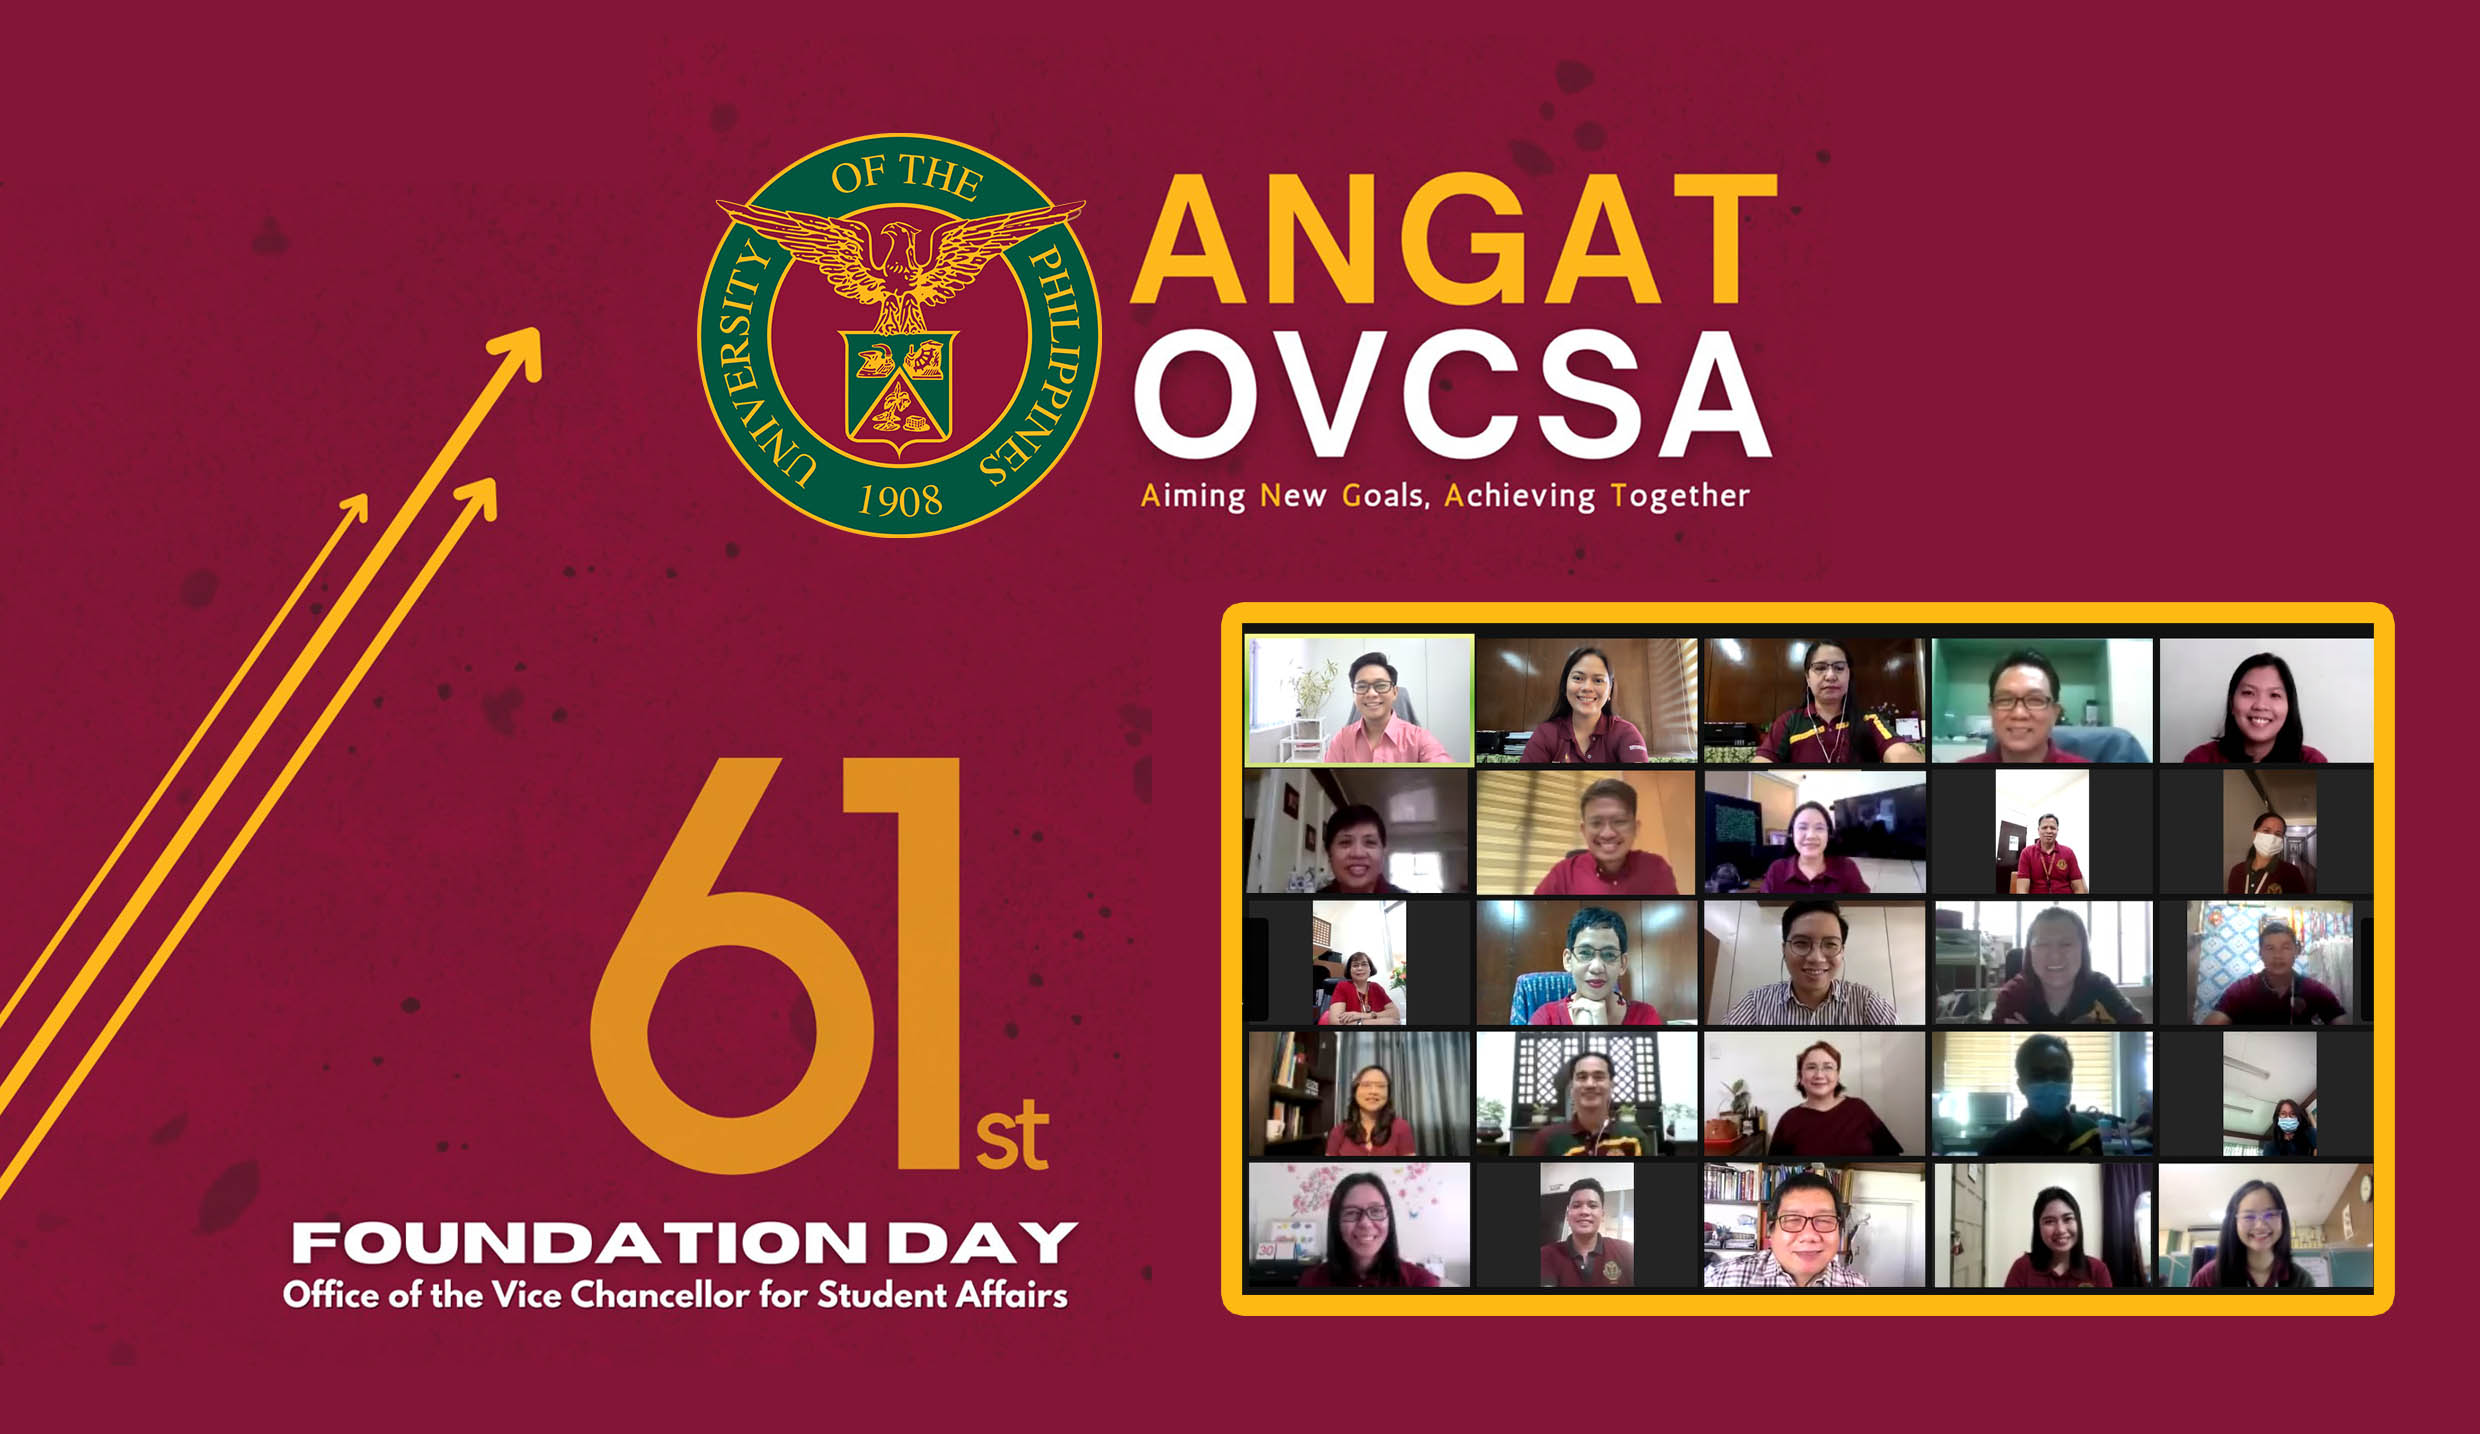 OVCSA marks its 61st Foundation Day